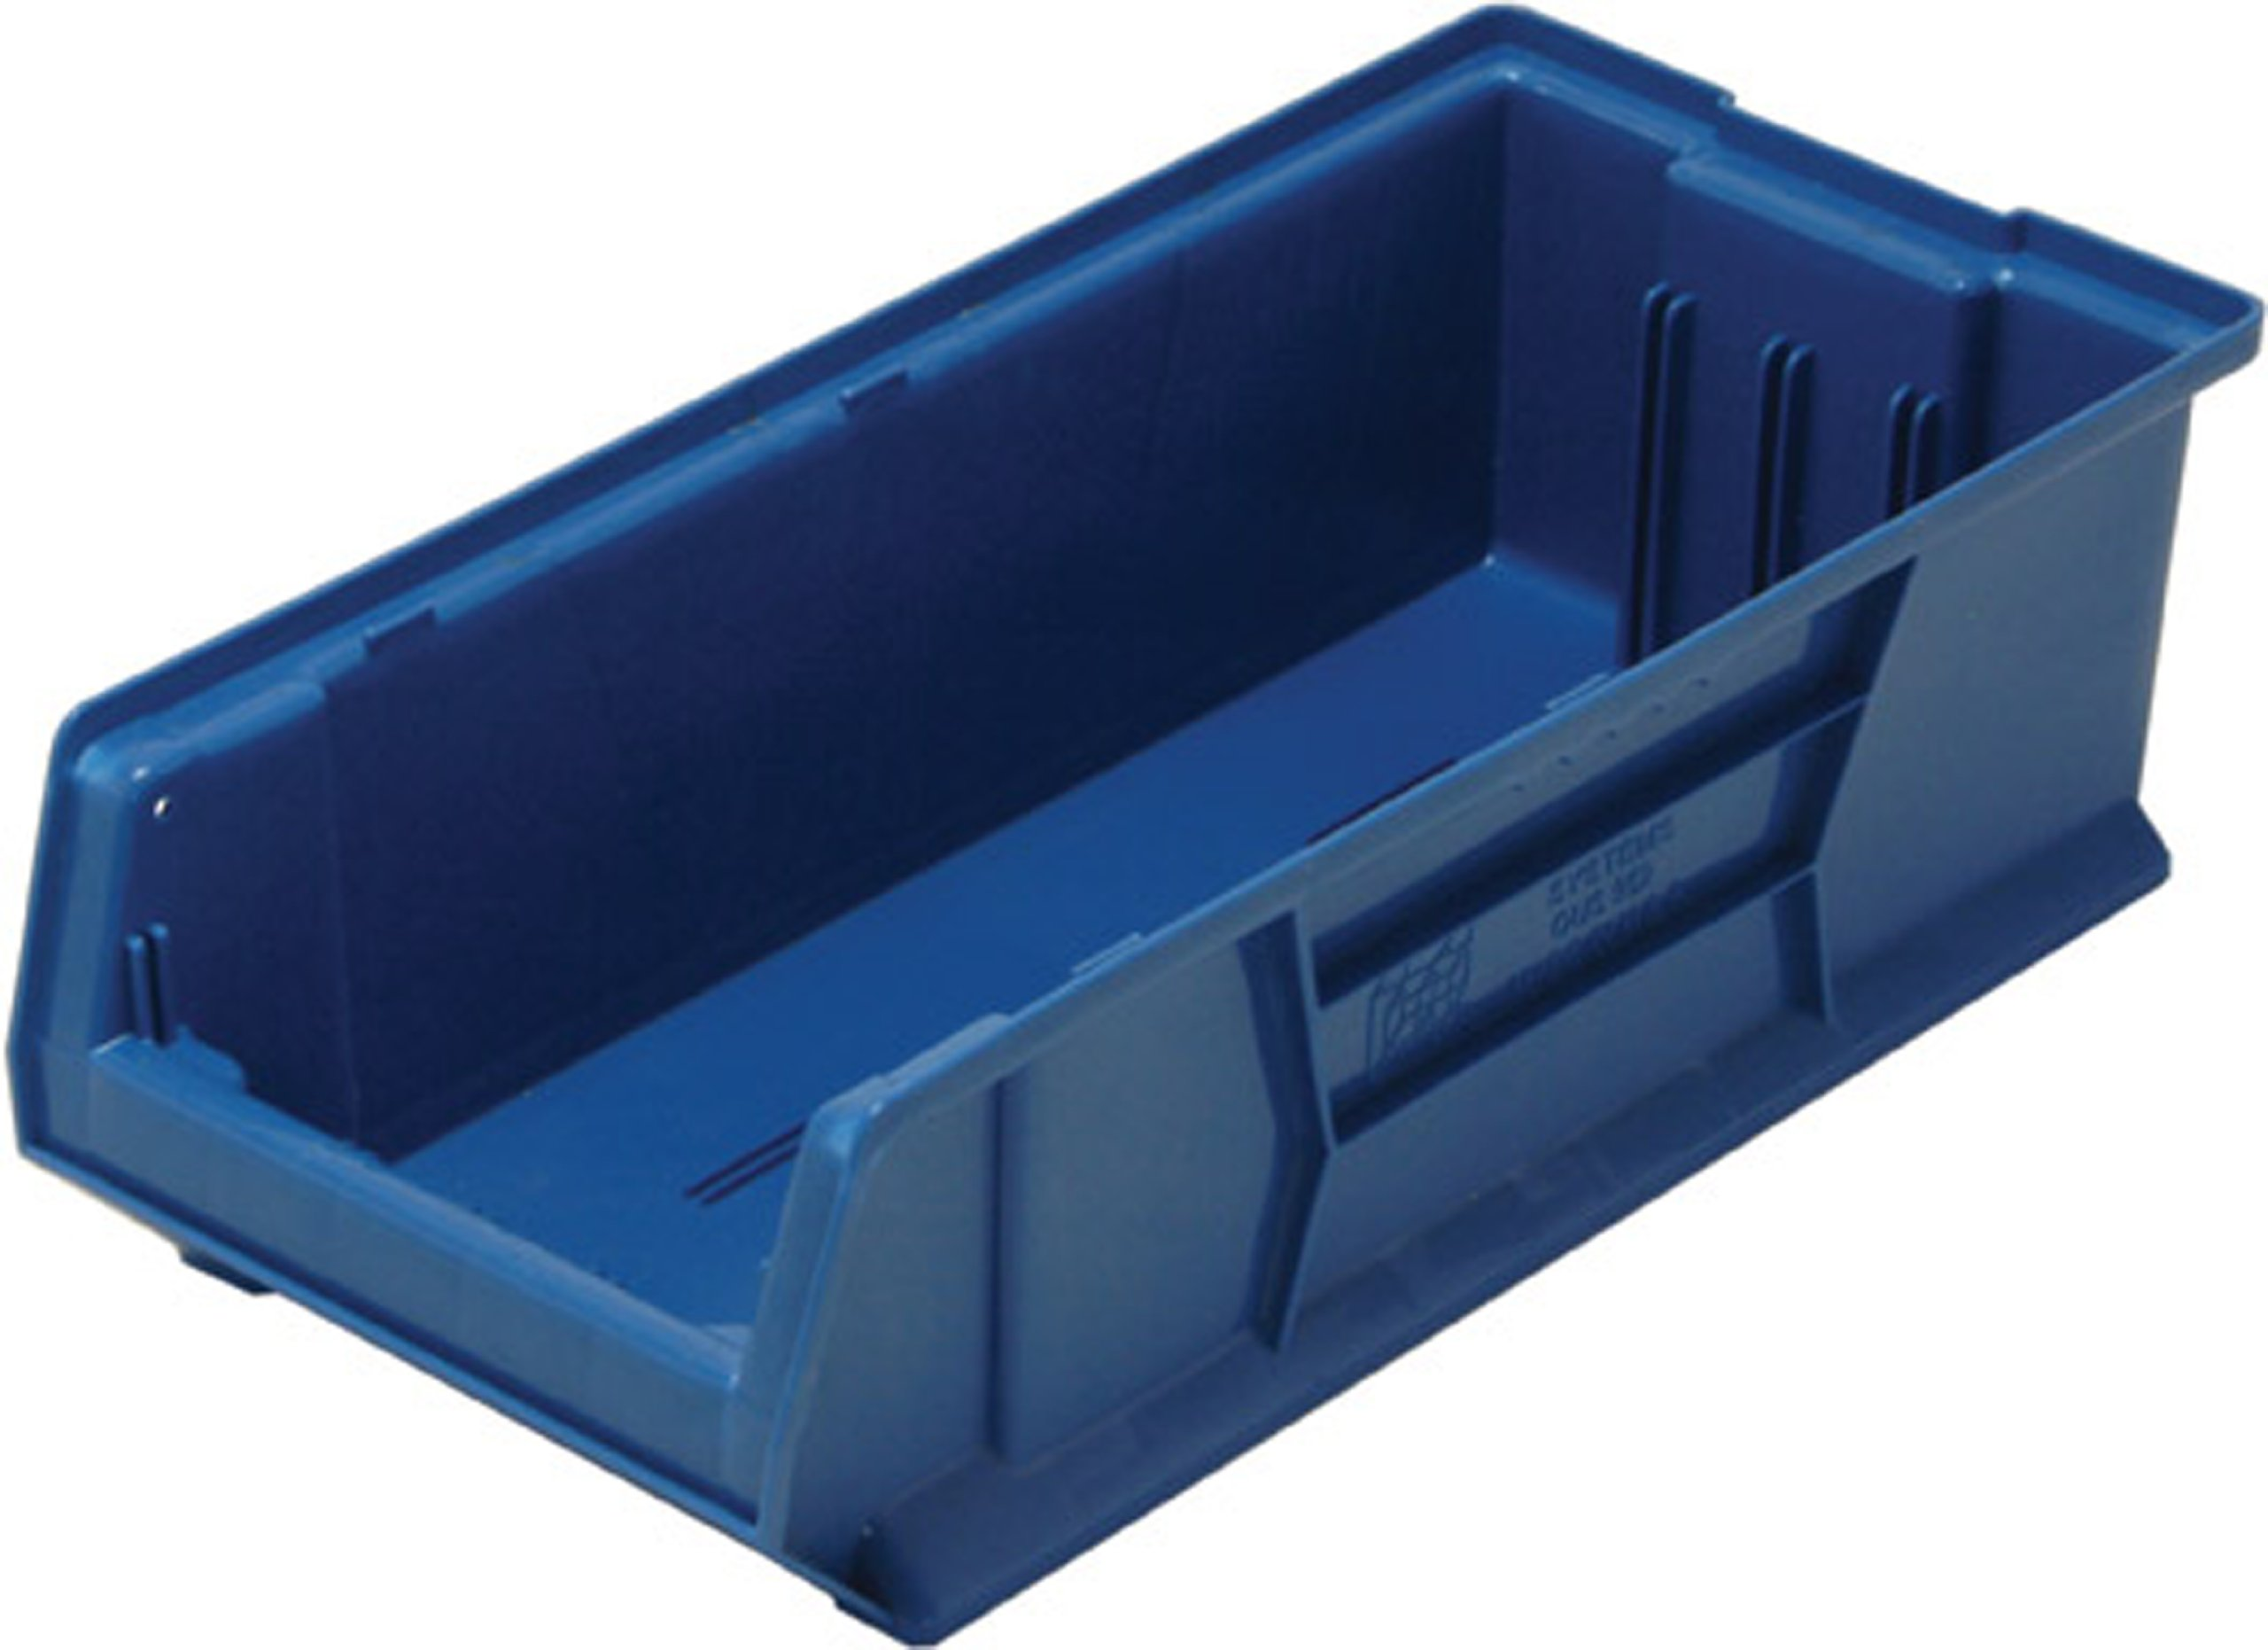 Quantum QUS952 Plastic Storage Stacking Hulk Container, 24-Inch by 11-Inch by 7-Inch, Blue, Case of 4